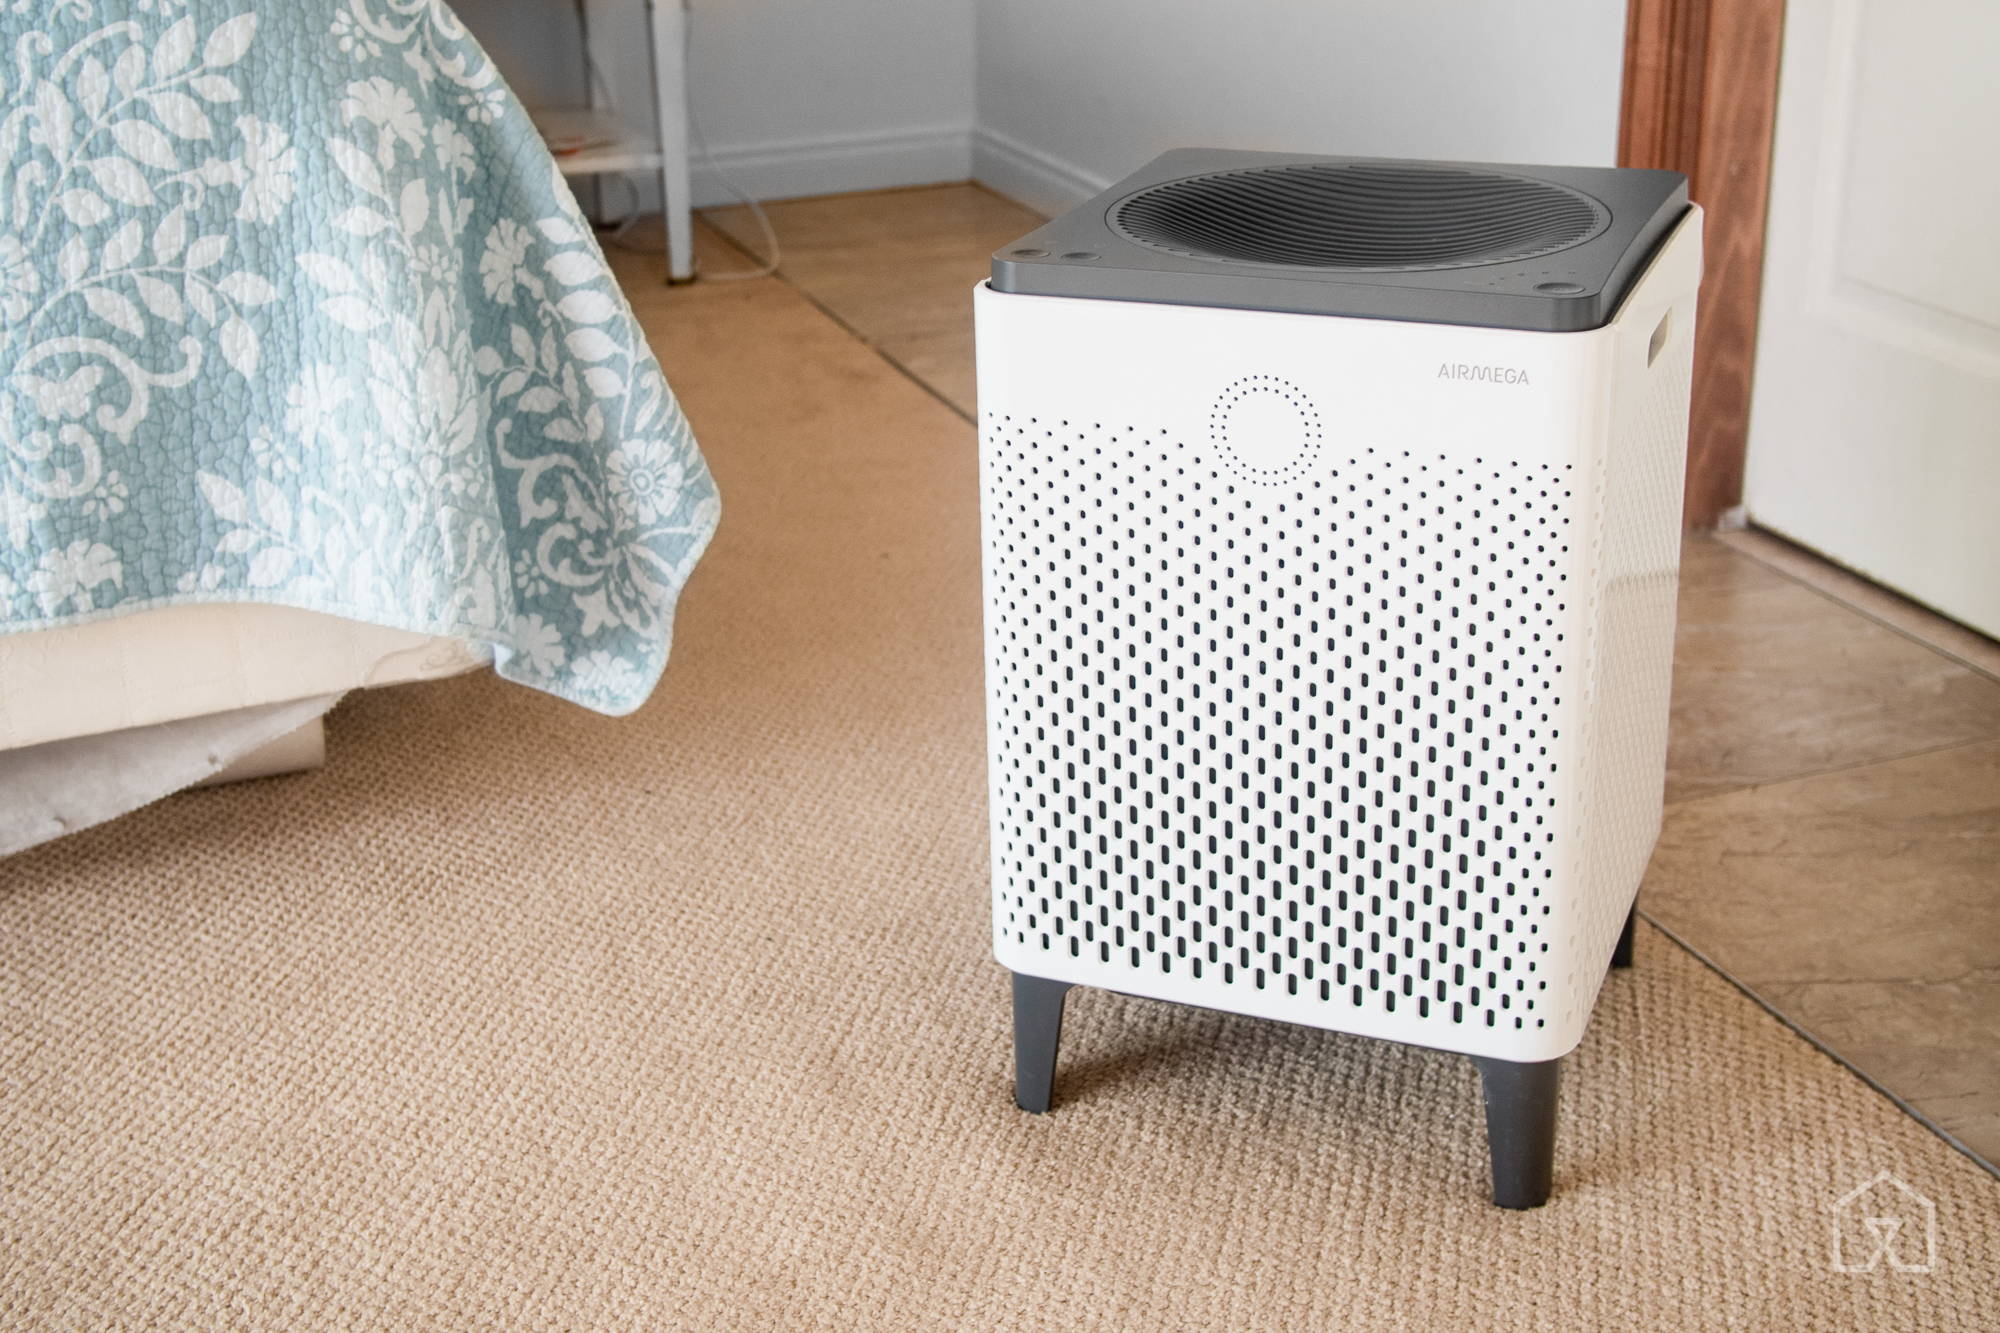 Upgrade  Coway Airmega 300. The best air purifier